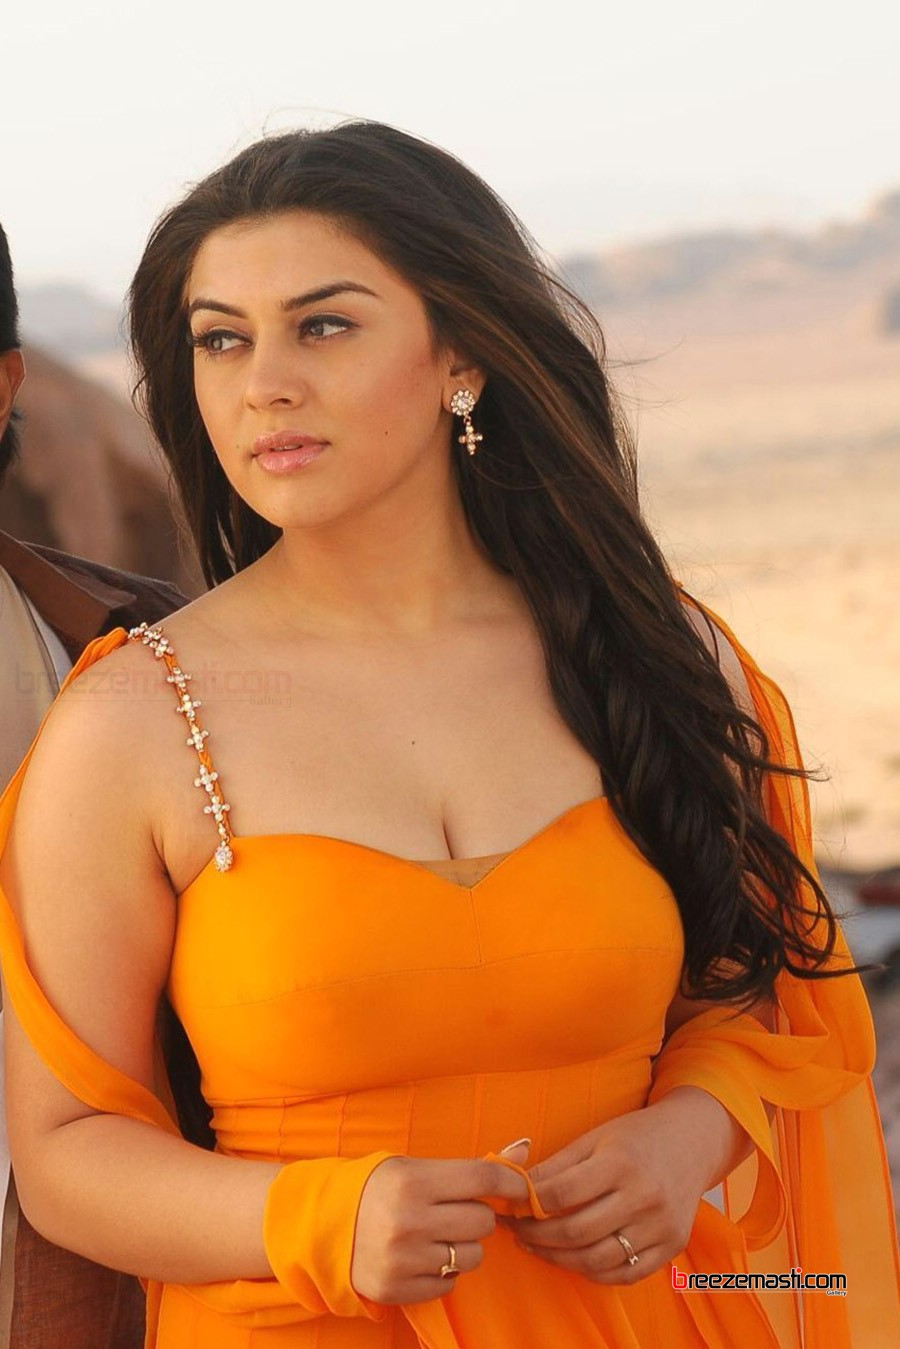 hd wallpapers: hansika motwani